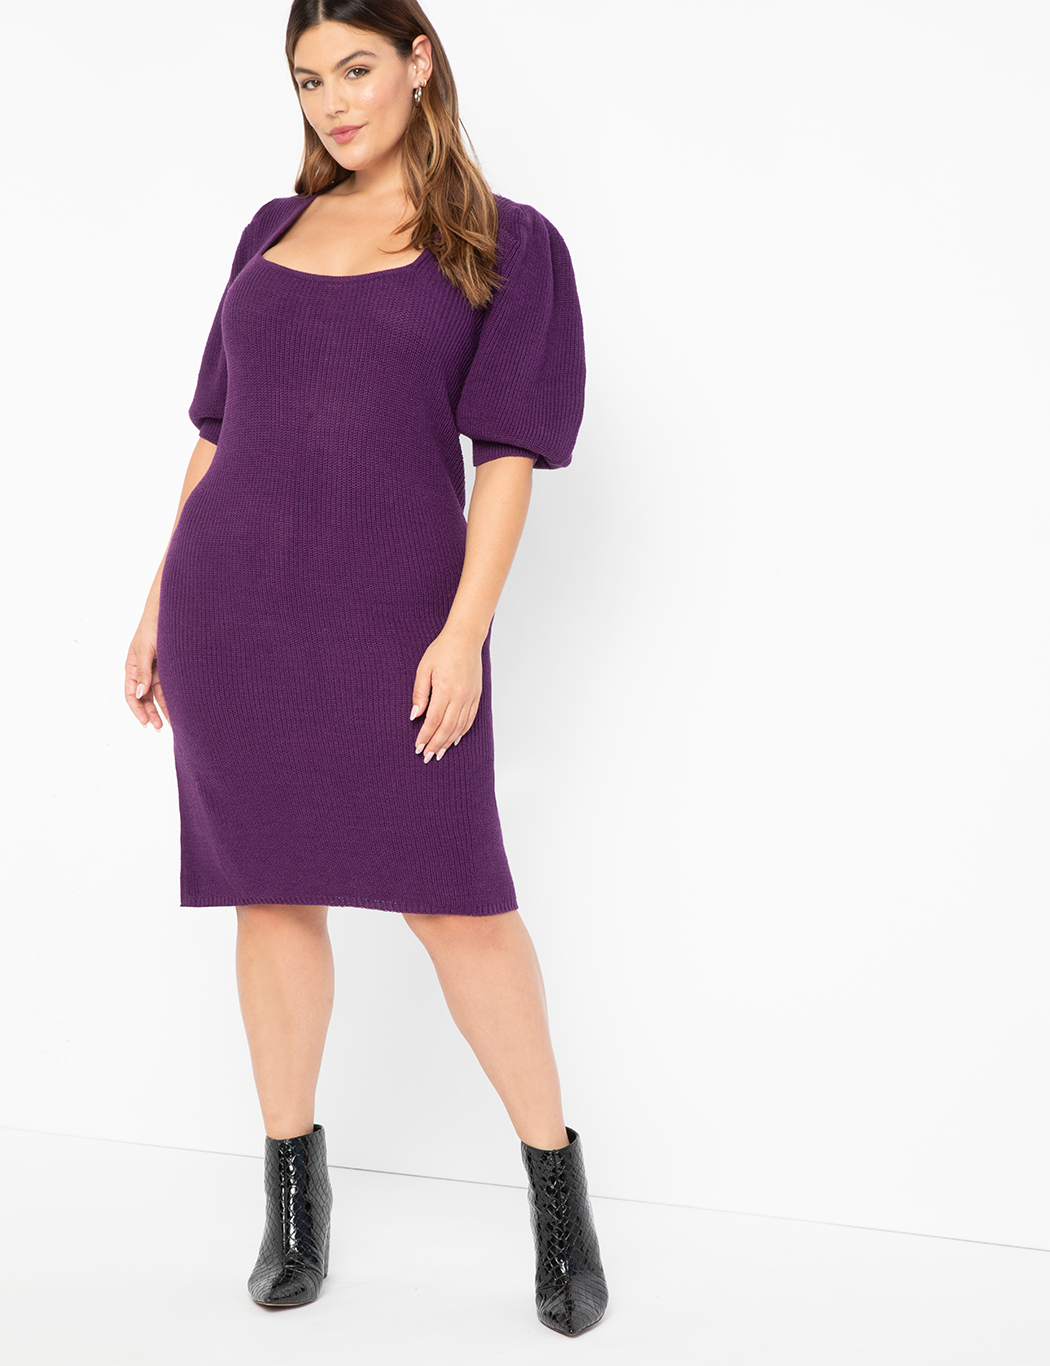 ELOQUII Elements Square Neck Sweater Midi Dress Purple